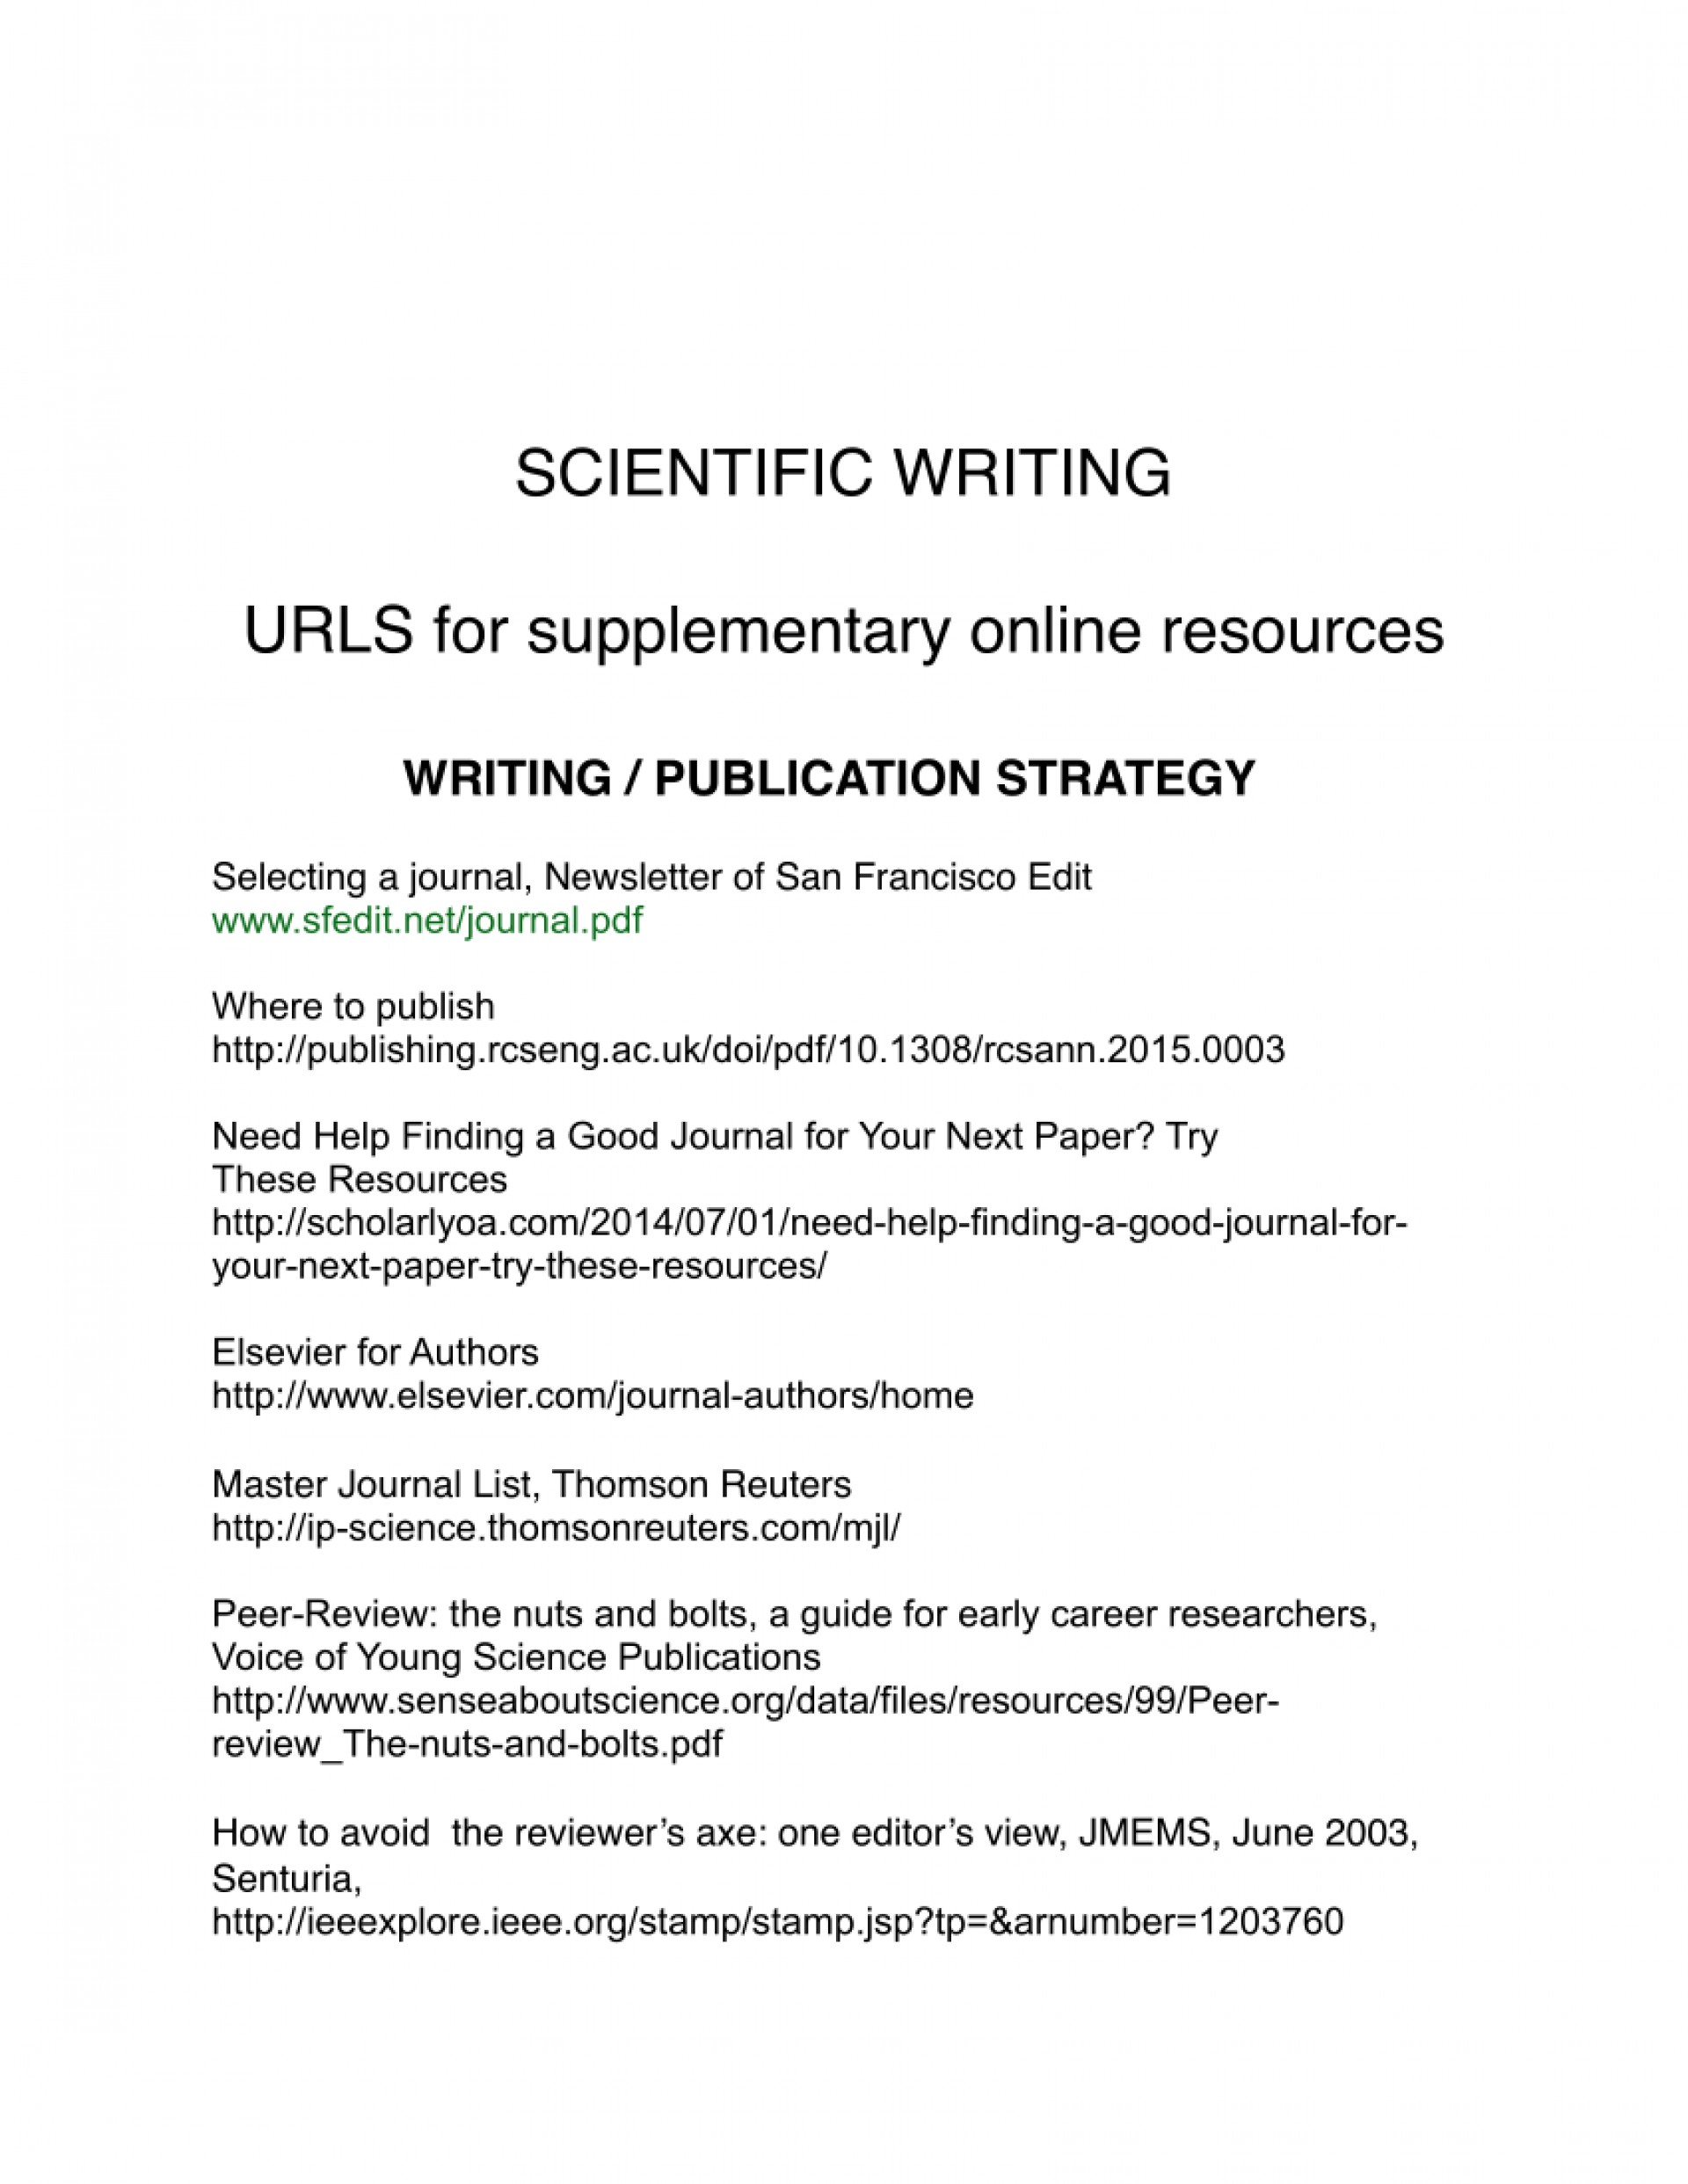 006 How To Write And Publish Scientific Research Paper Pdf Surprising A 1920